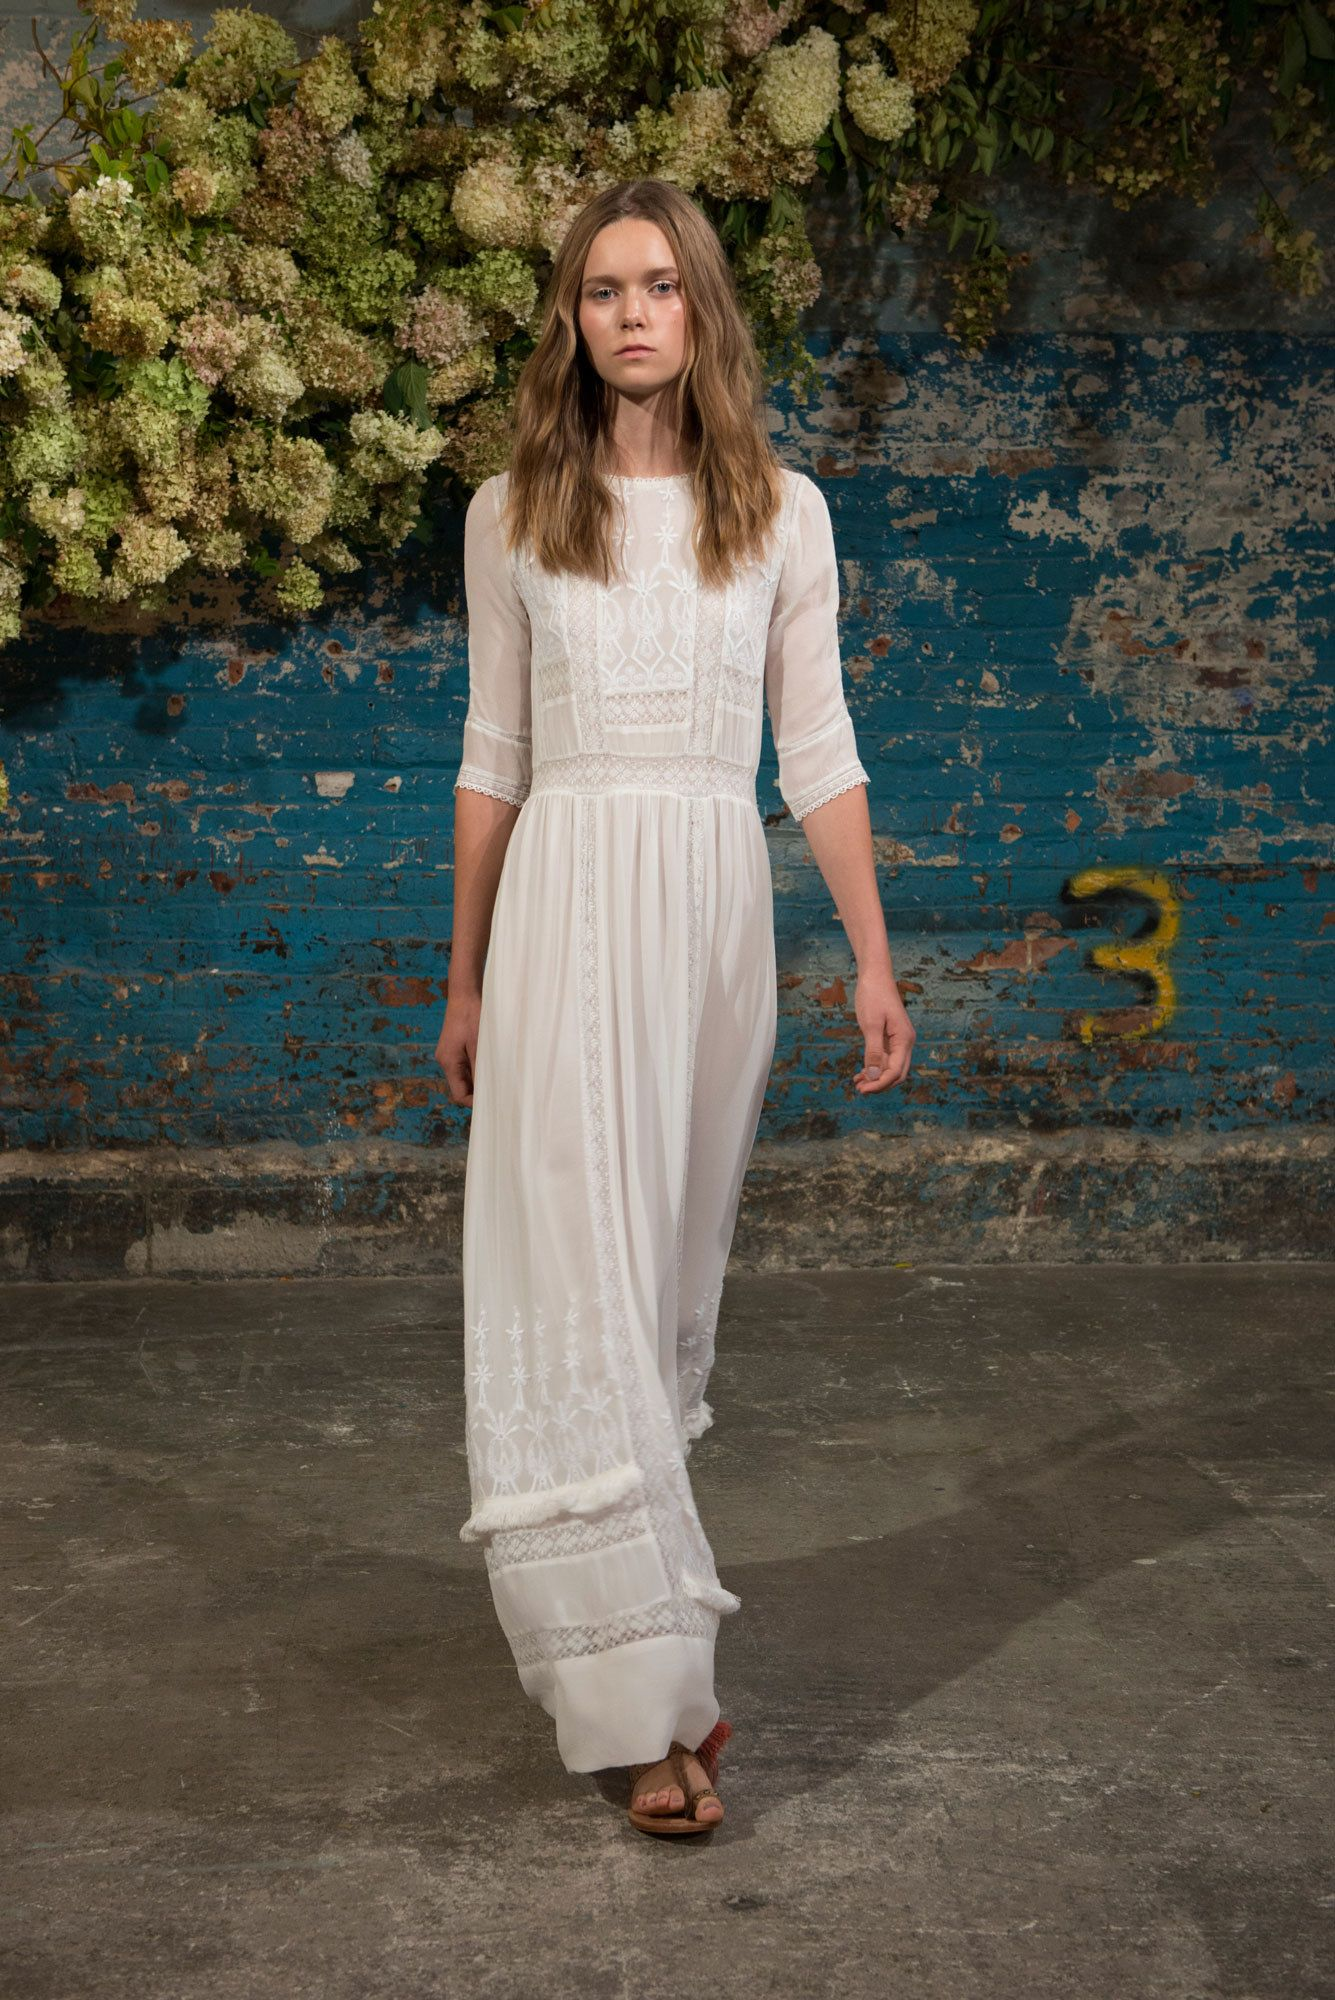 Ulla Johnson Spring 2016 Ready-to-Wear Collection Photos - Vogue   http://www.vogue.com/fashion-shows/spring-2016-ready-to-wear/ulla-johnson/slideshow/collection#7